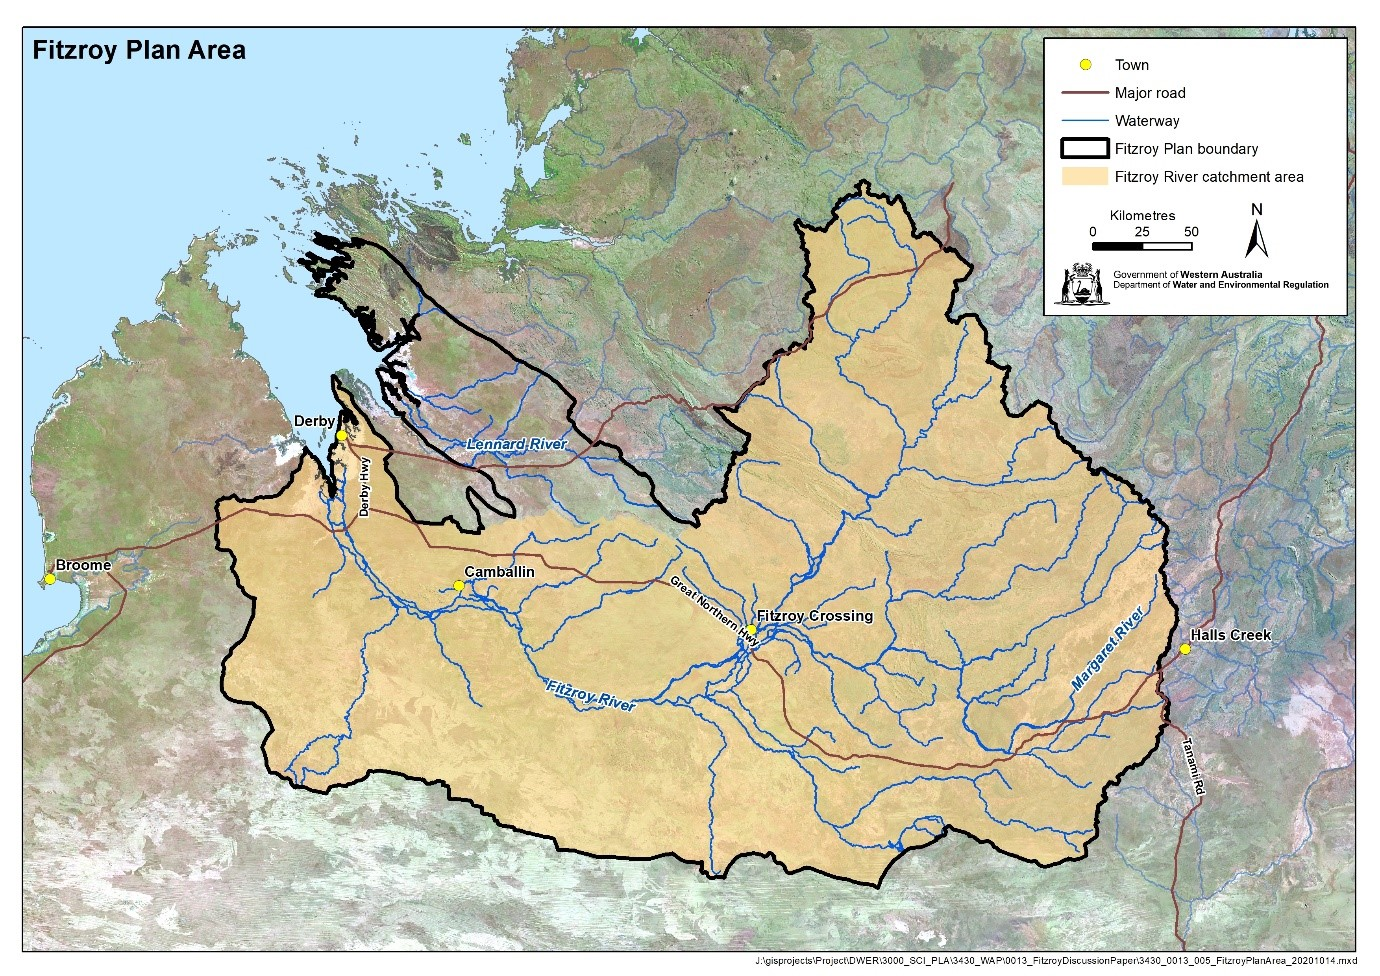 Planning area for the Fitzroy water allocation plan